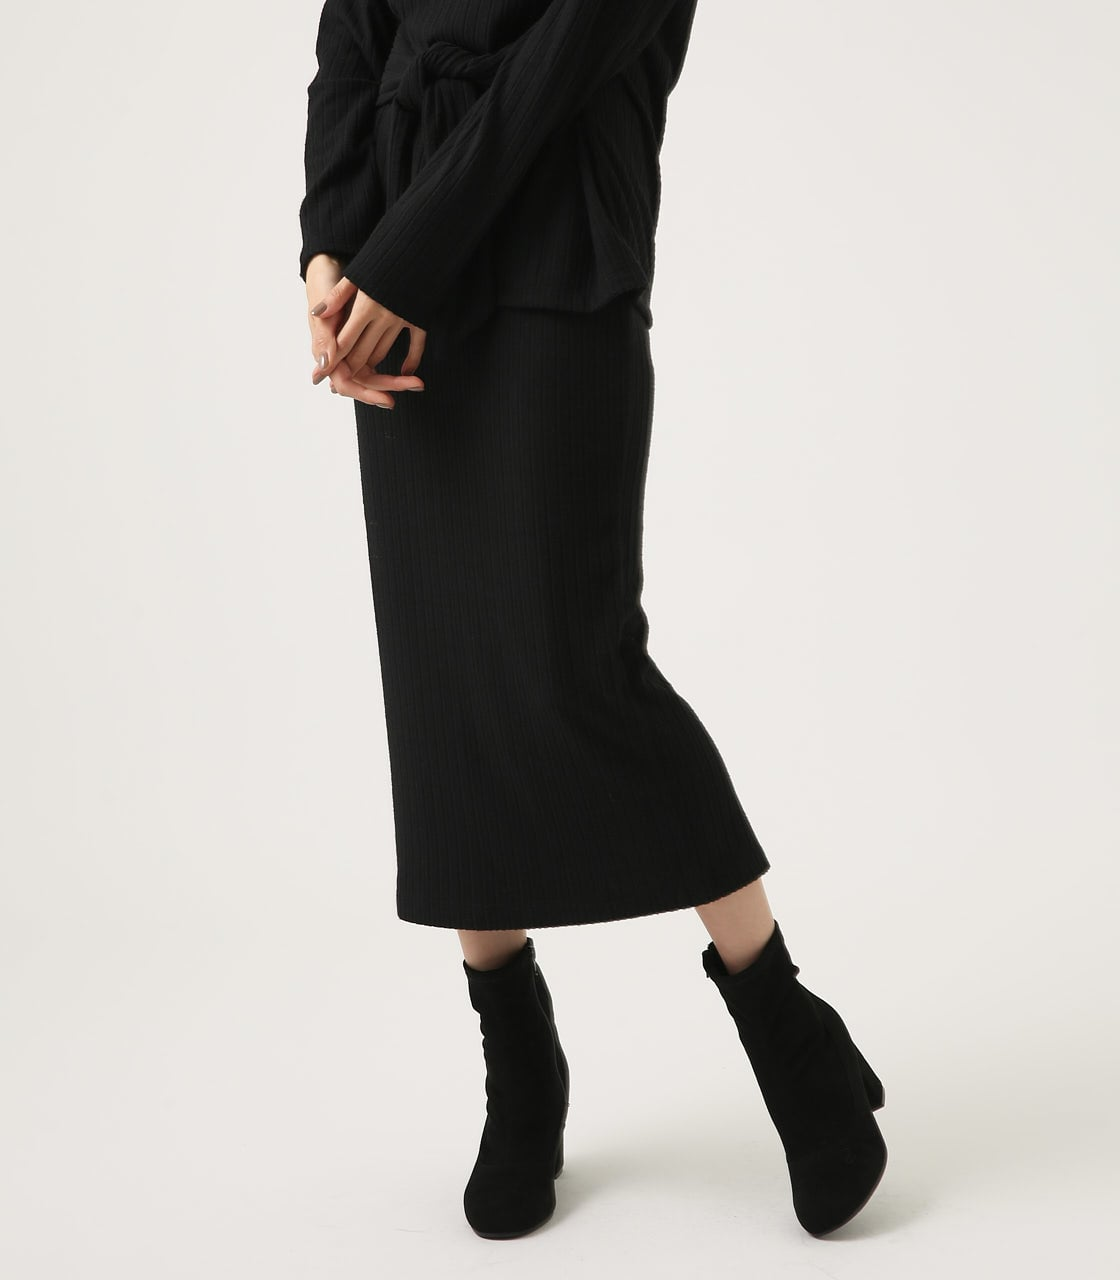 【AZUL BY MOUSSY】BLUSHED TIGHT MIDI SKIRT 詳細画像 BLK 1